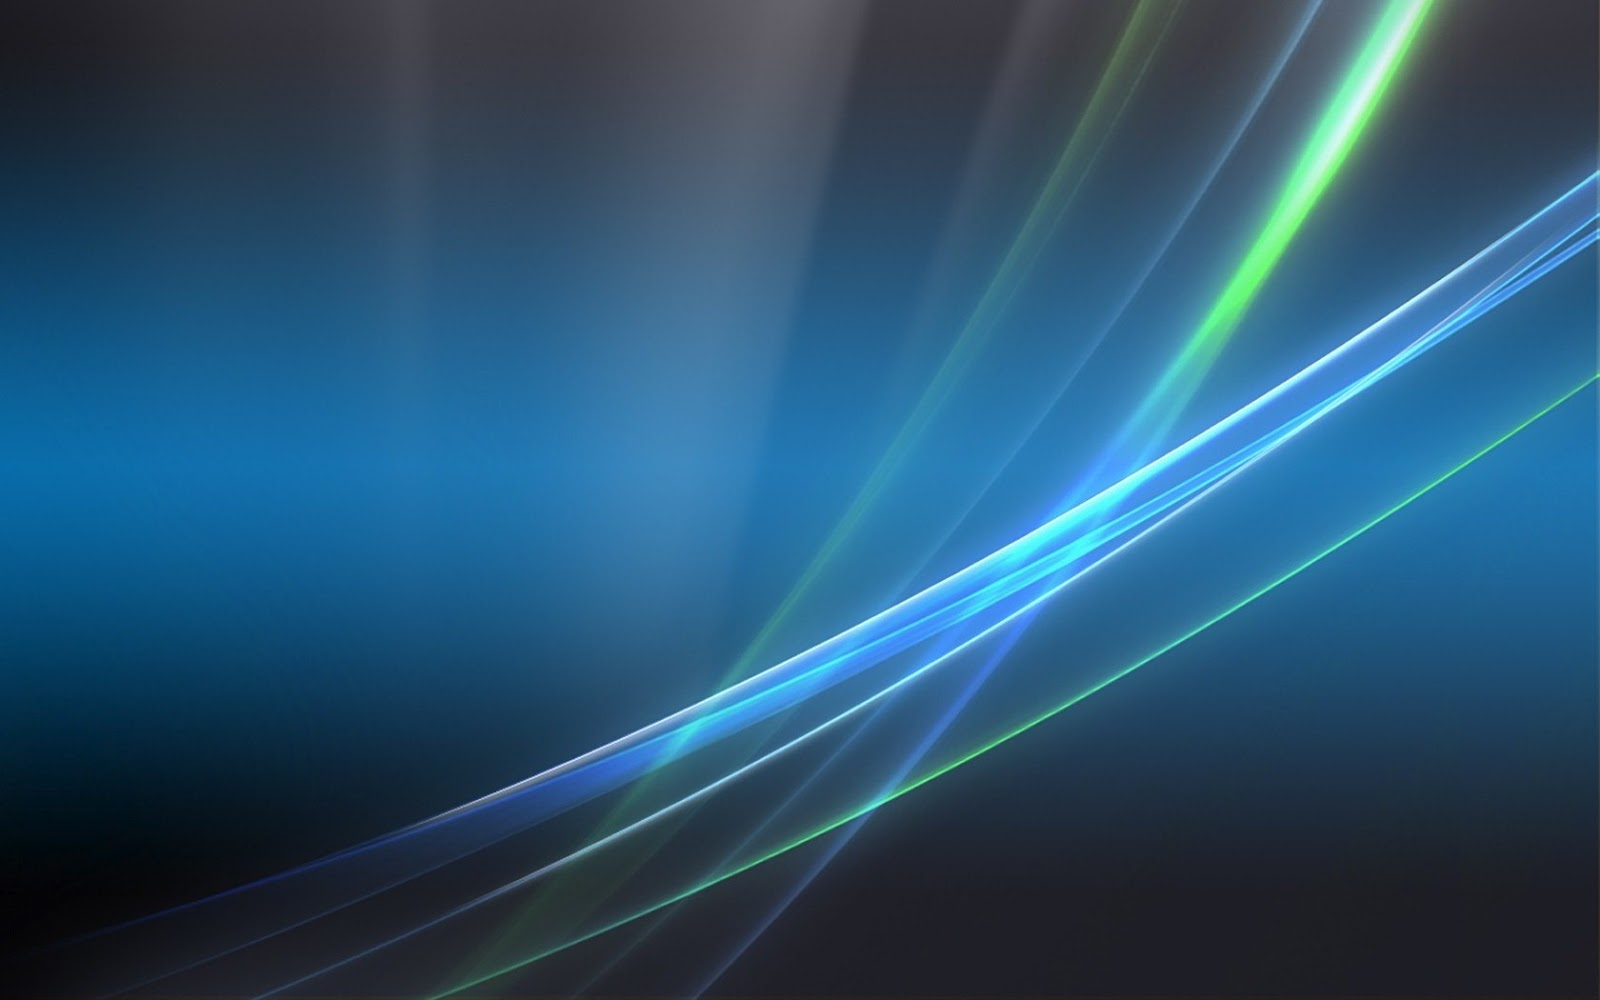 HHMZZ Download Free HD Wallpapers Of Windows 7